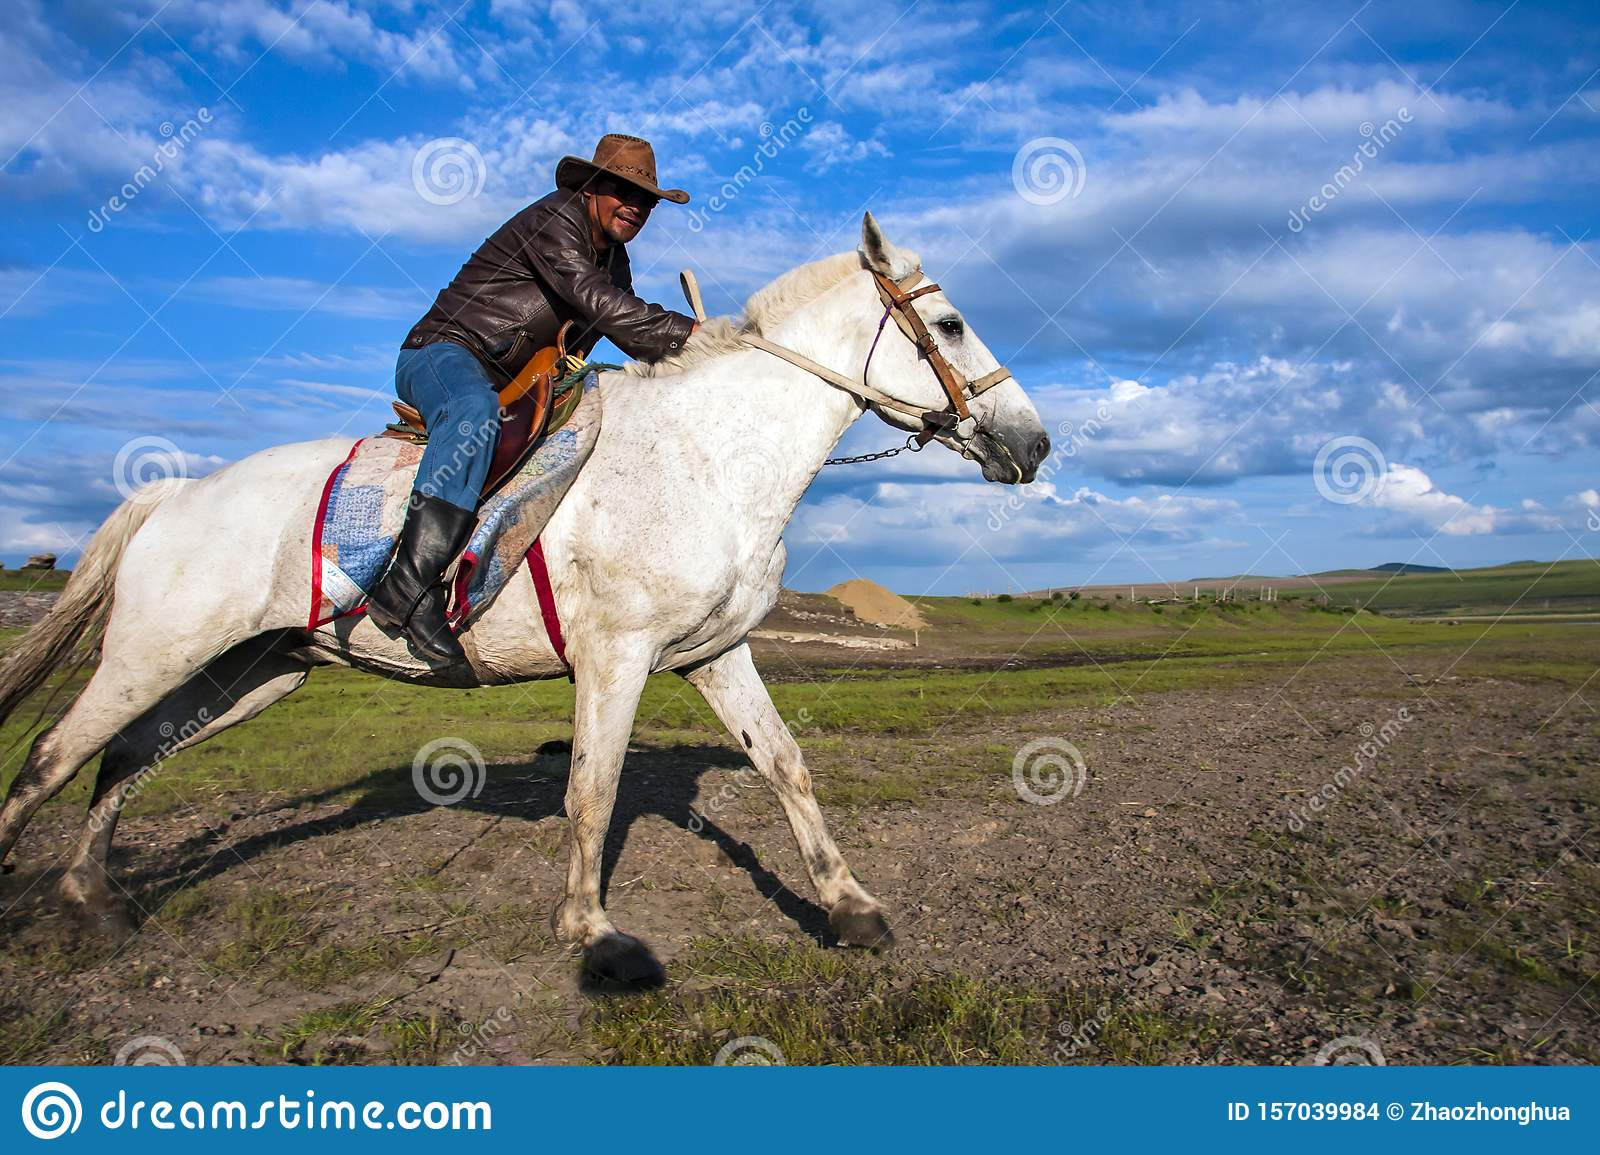 Ride A White Horse Of Man Cowboy Horse Editorial Stock Image Image Of Animals Charming 157039984